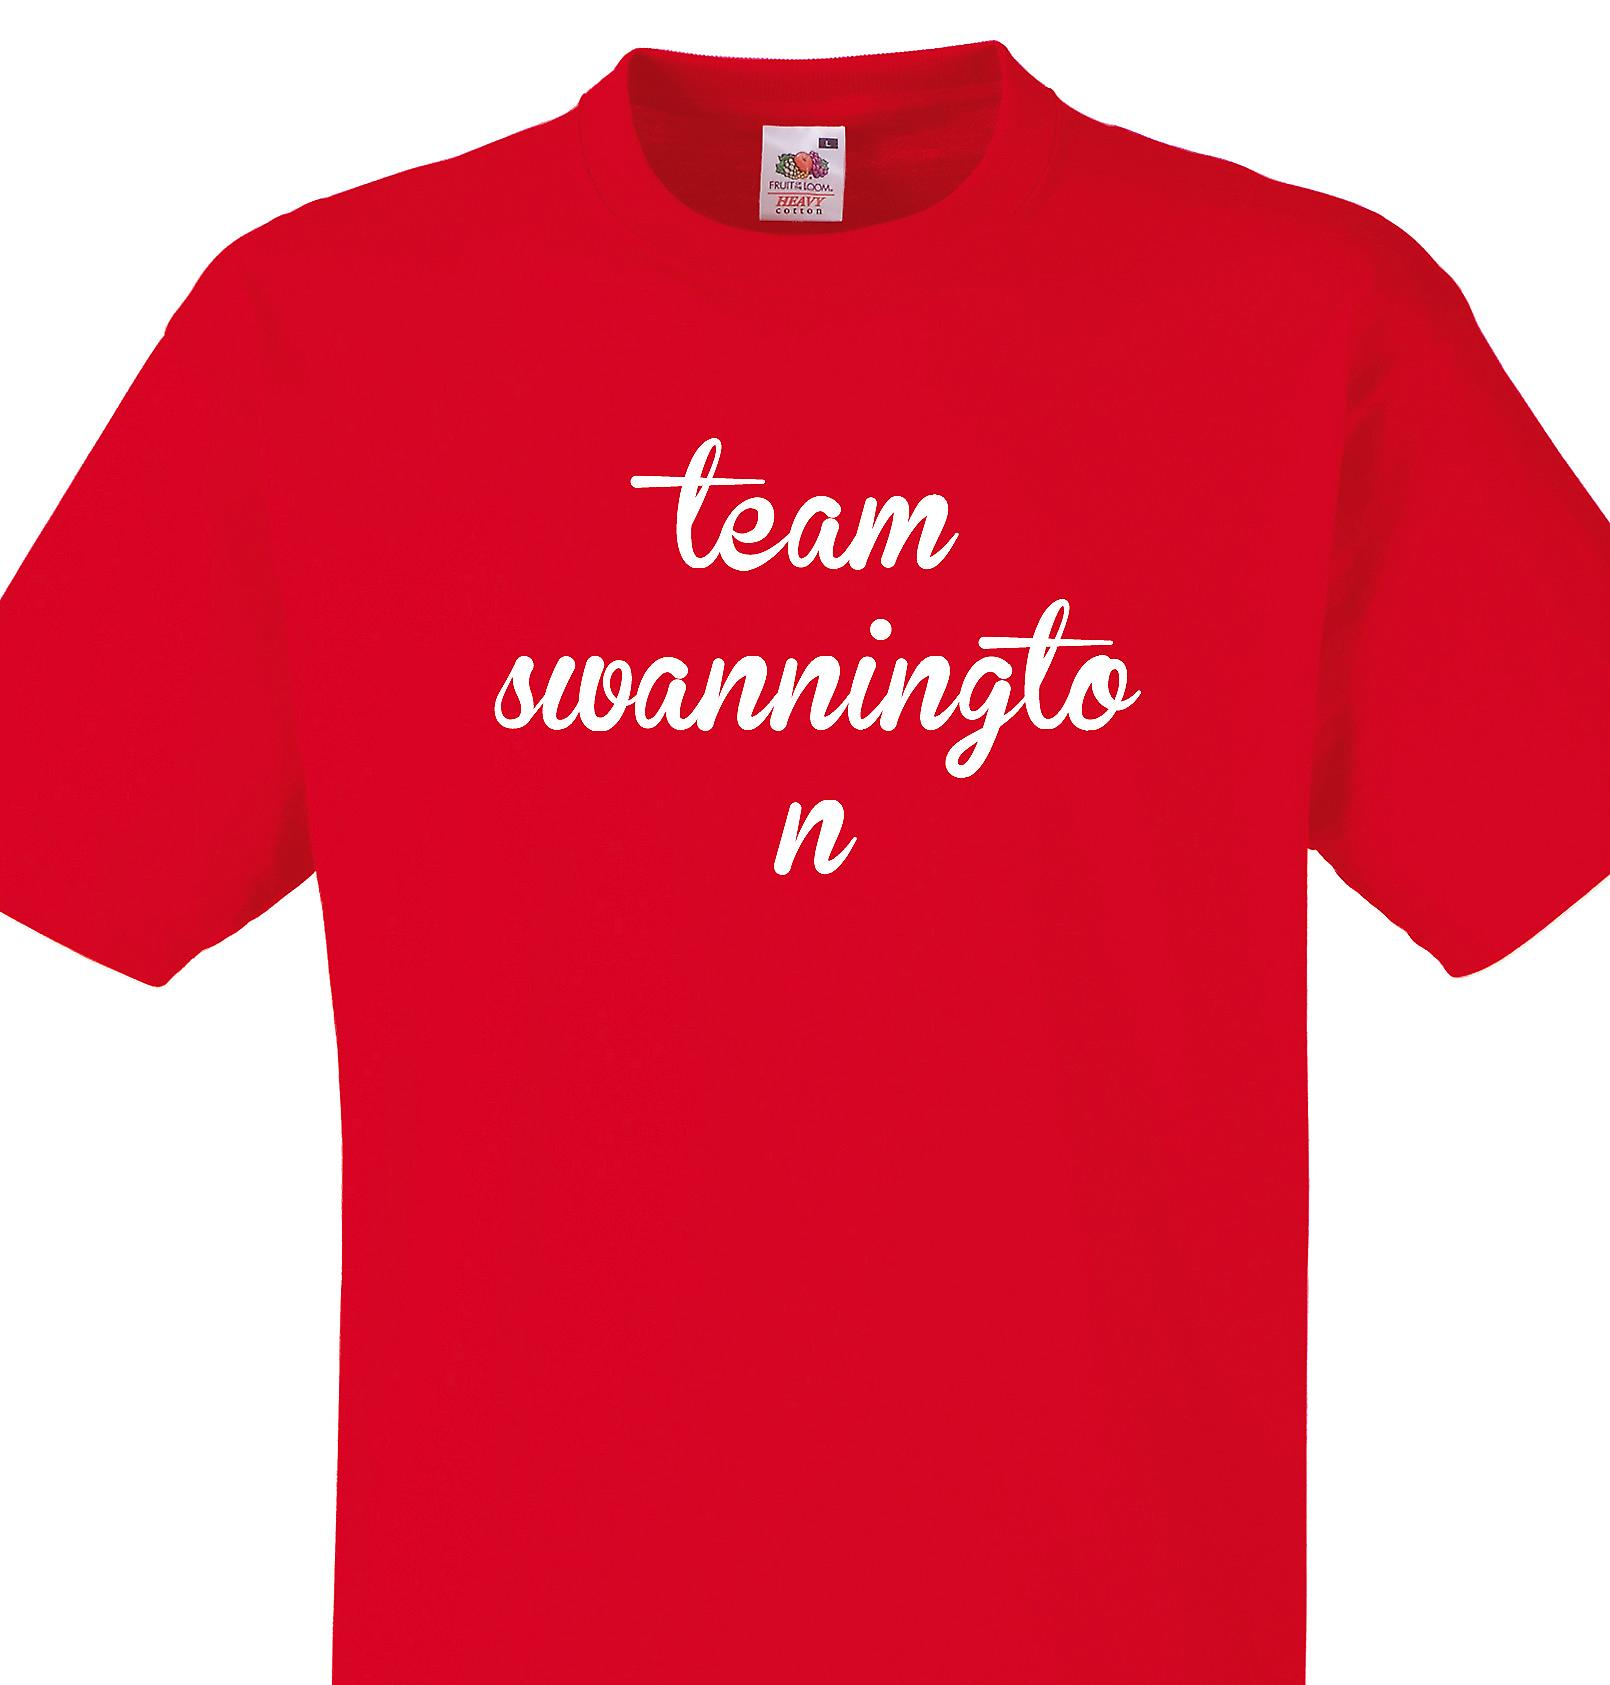 Team Swannington Red T shirt